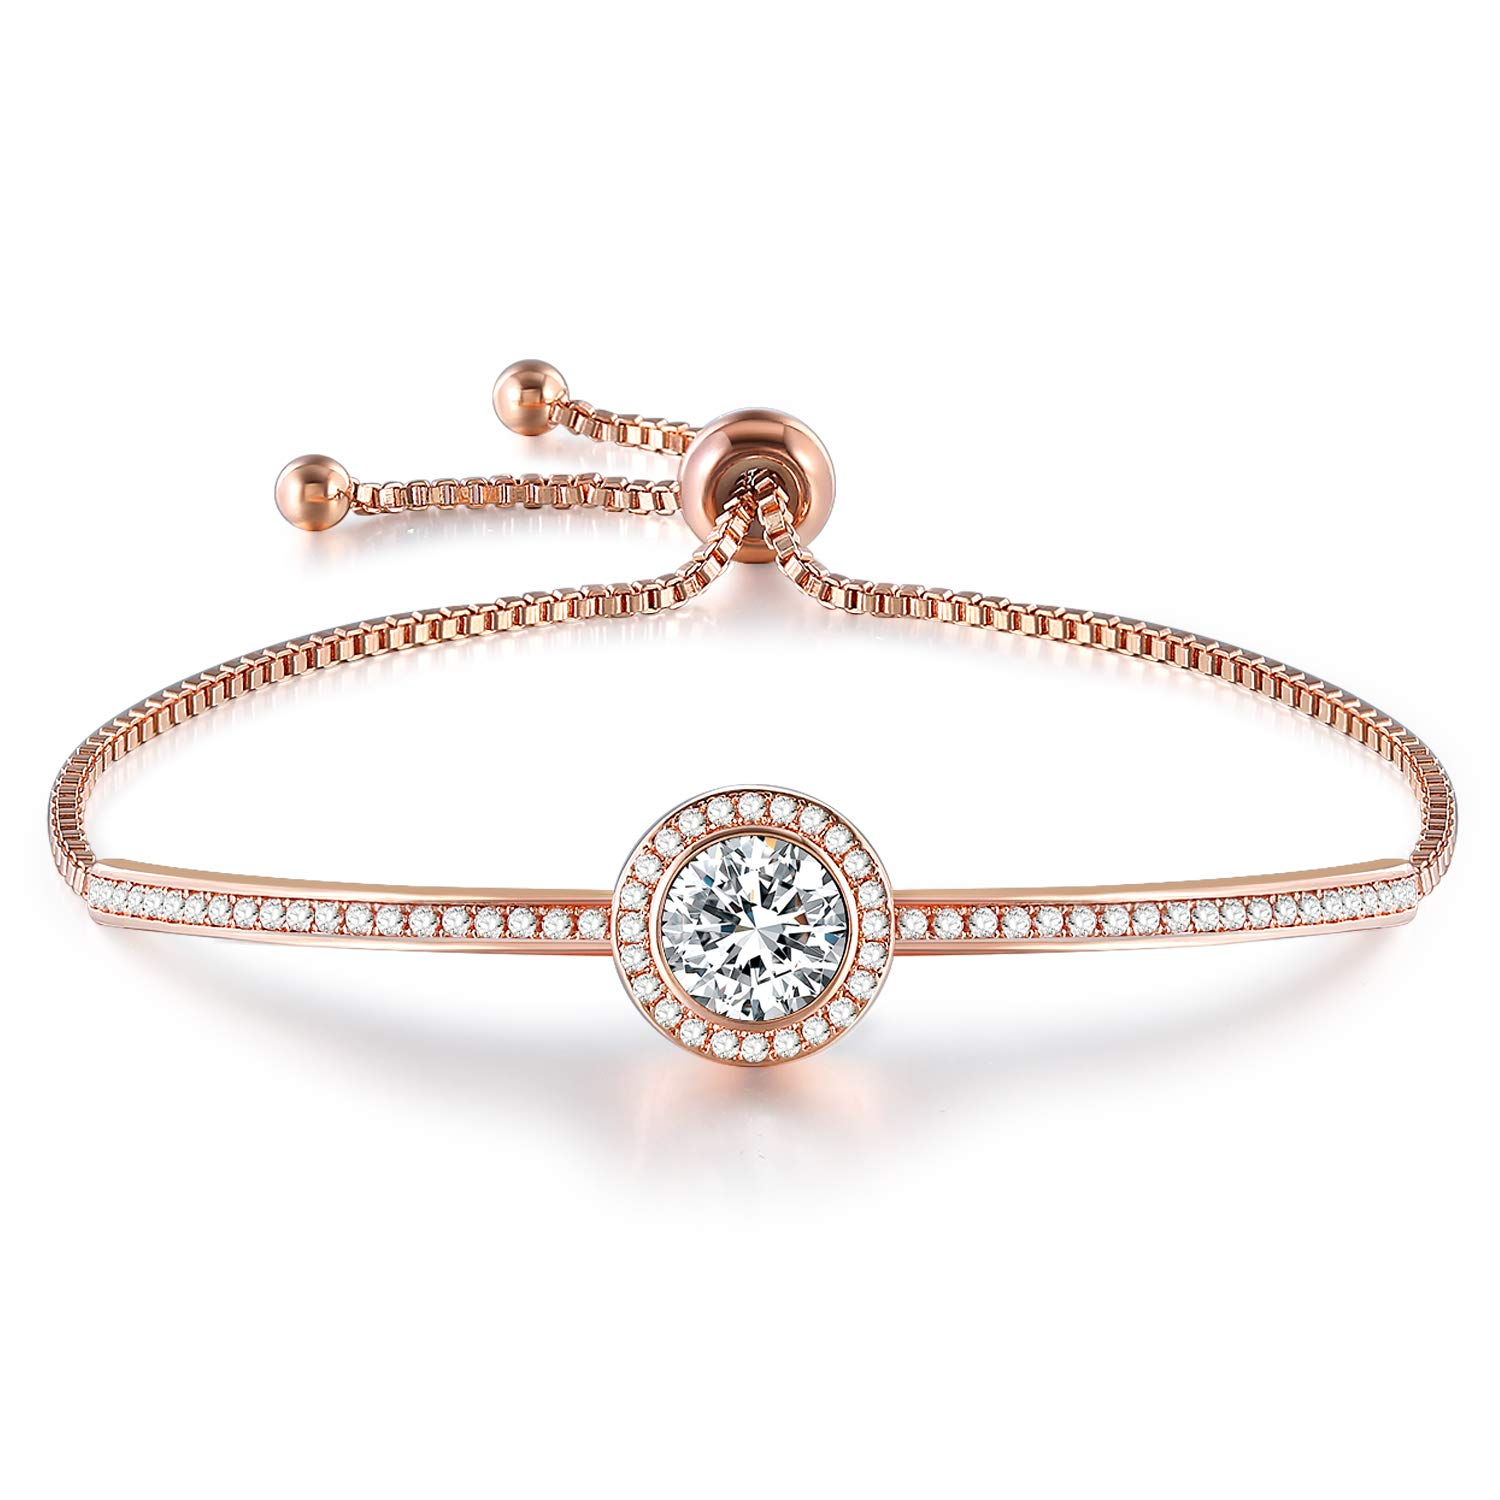 GEORGE · SMITH Birthday Gifts''Endless Saturn'' Adjustable Women Rose Gold Bangle Bracelet Crystals from Swarovski Jewelry for Girlfriend Wife Mom -a Luxury Gift Box Included (Rose Gold Bracelet) by GEORGE · SMITH